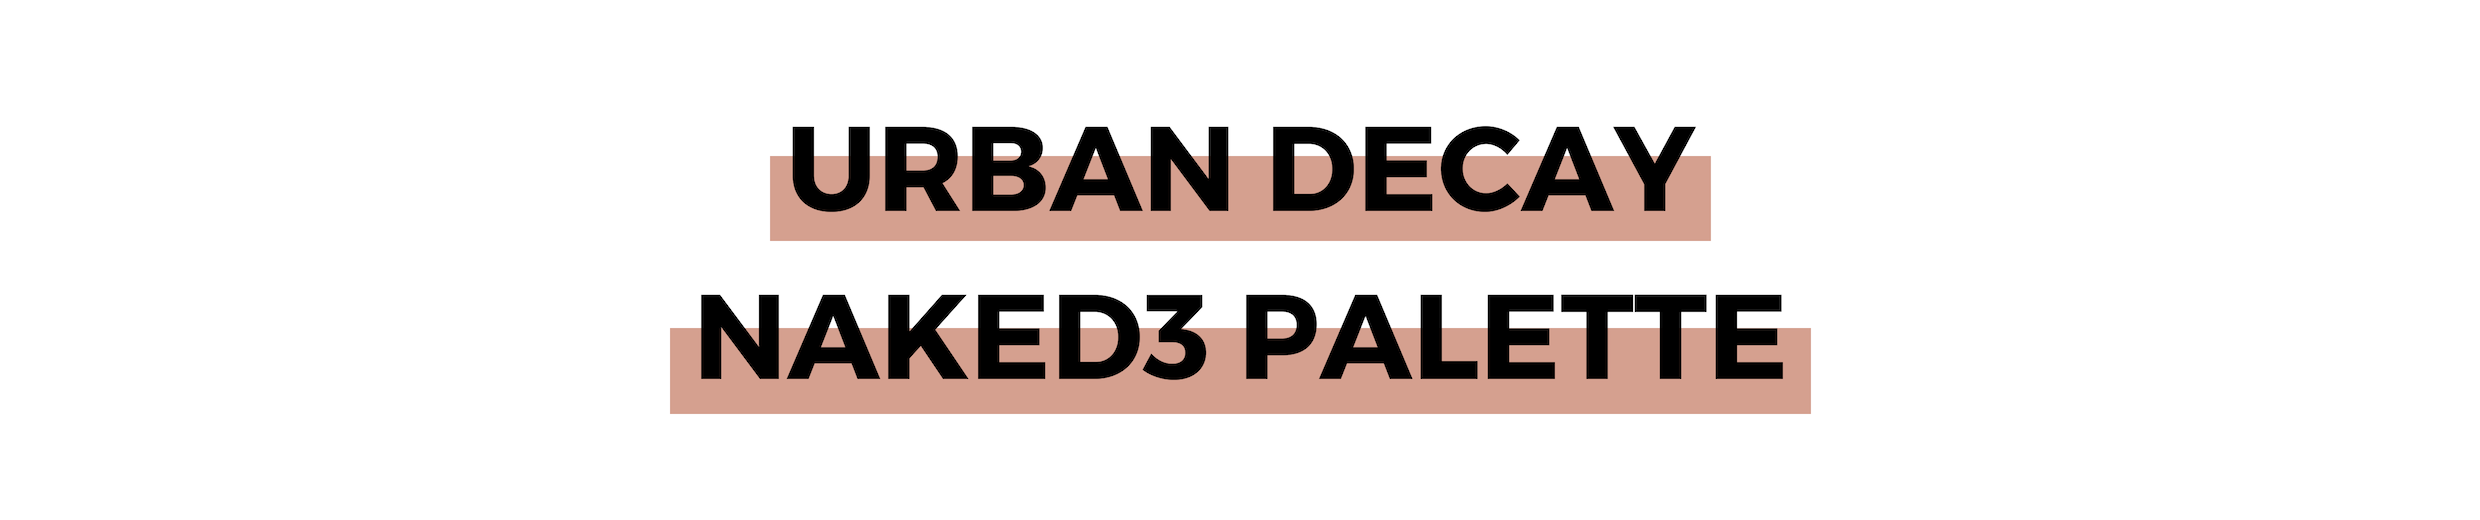 URBAN DECAY NAKED3 PALETTE.png